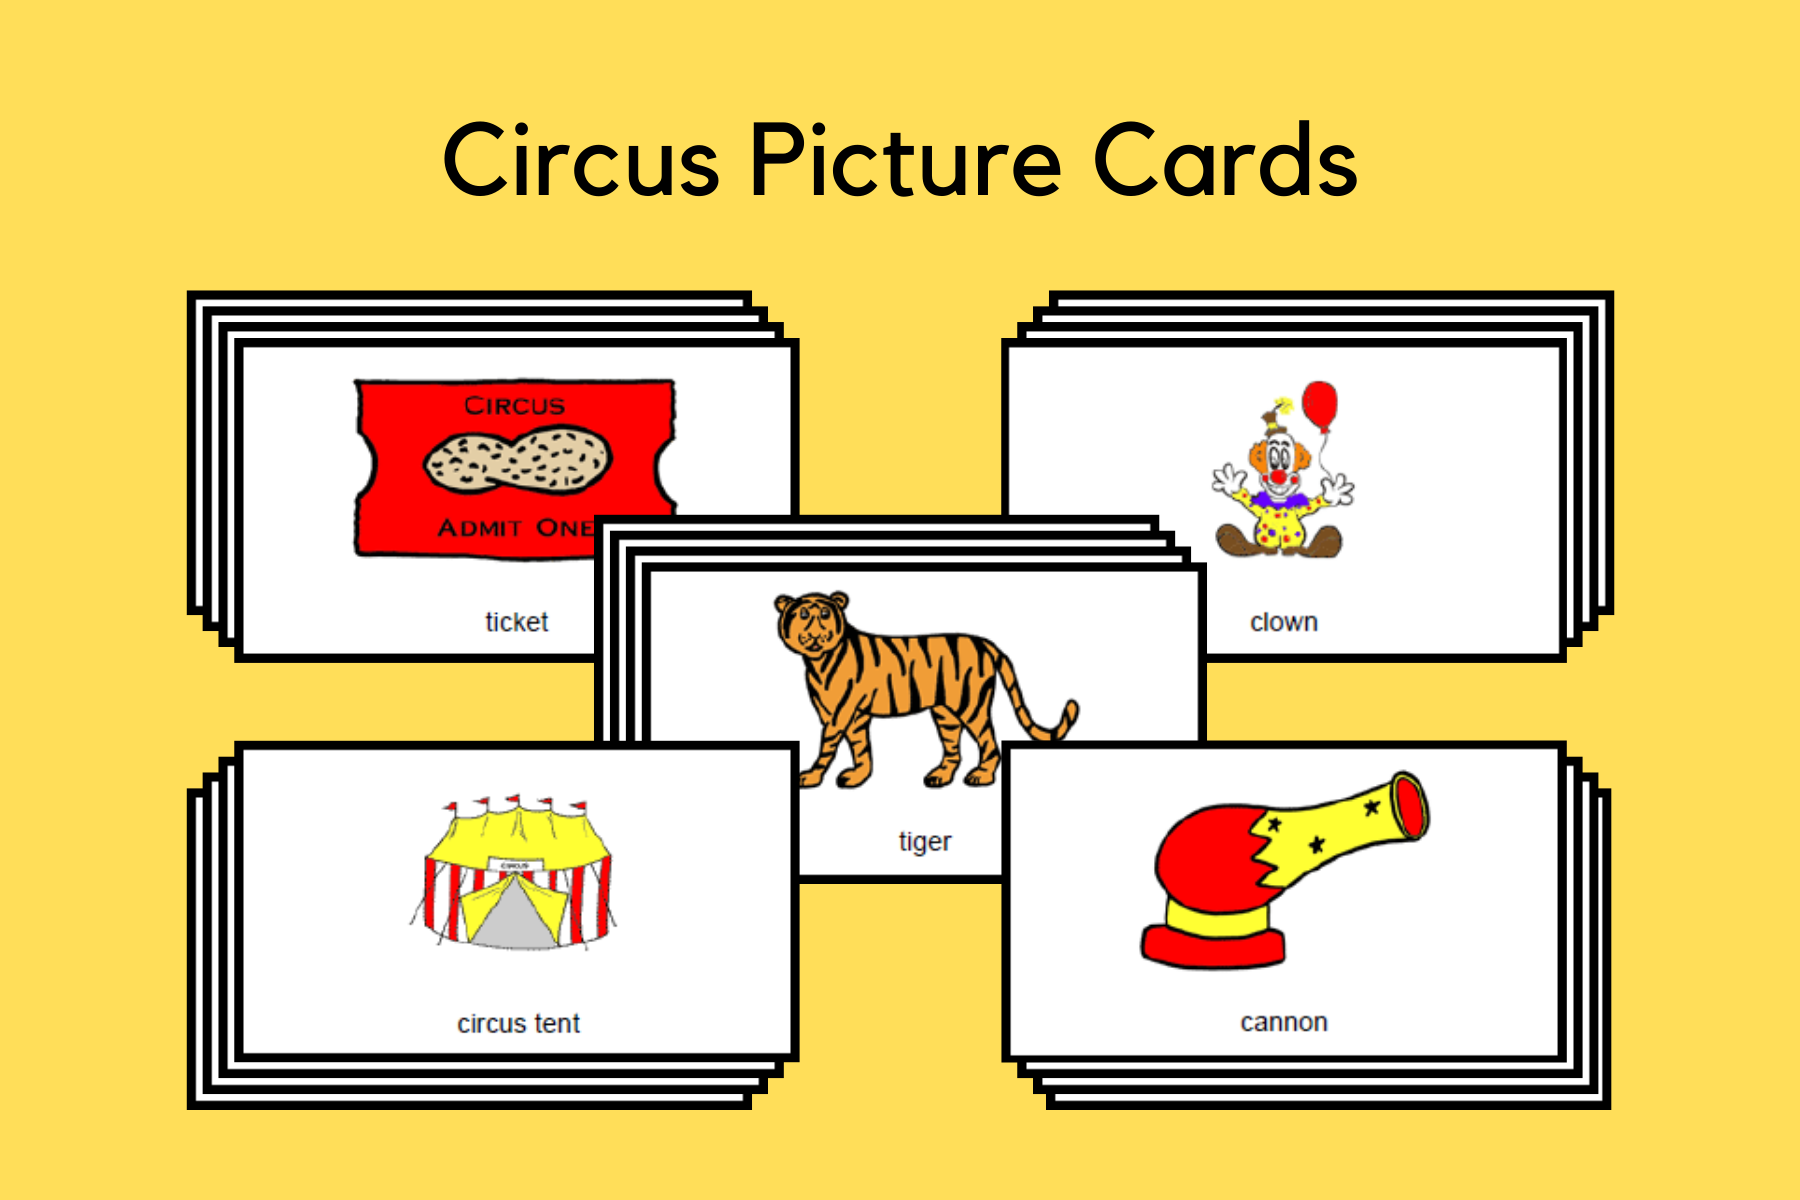 Circus Picture Cards